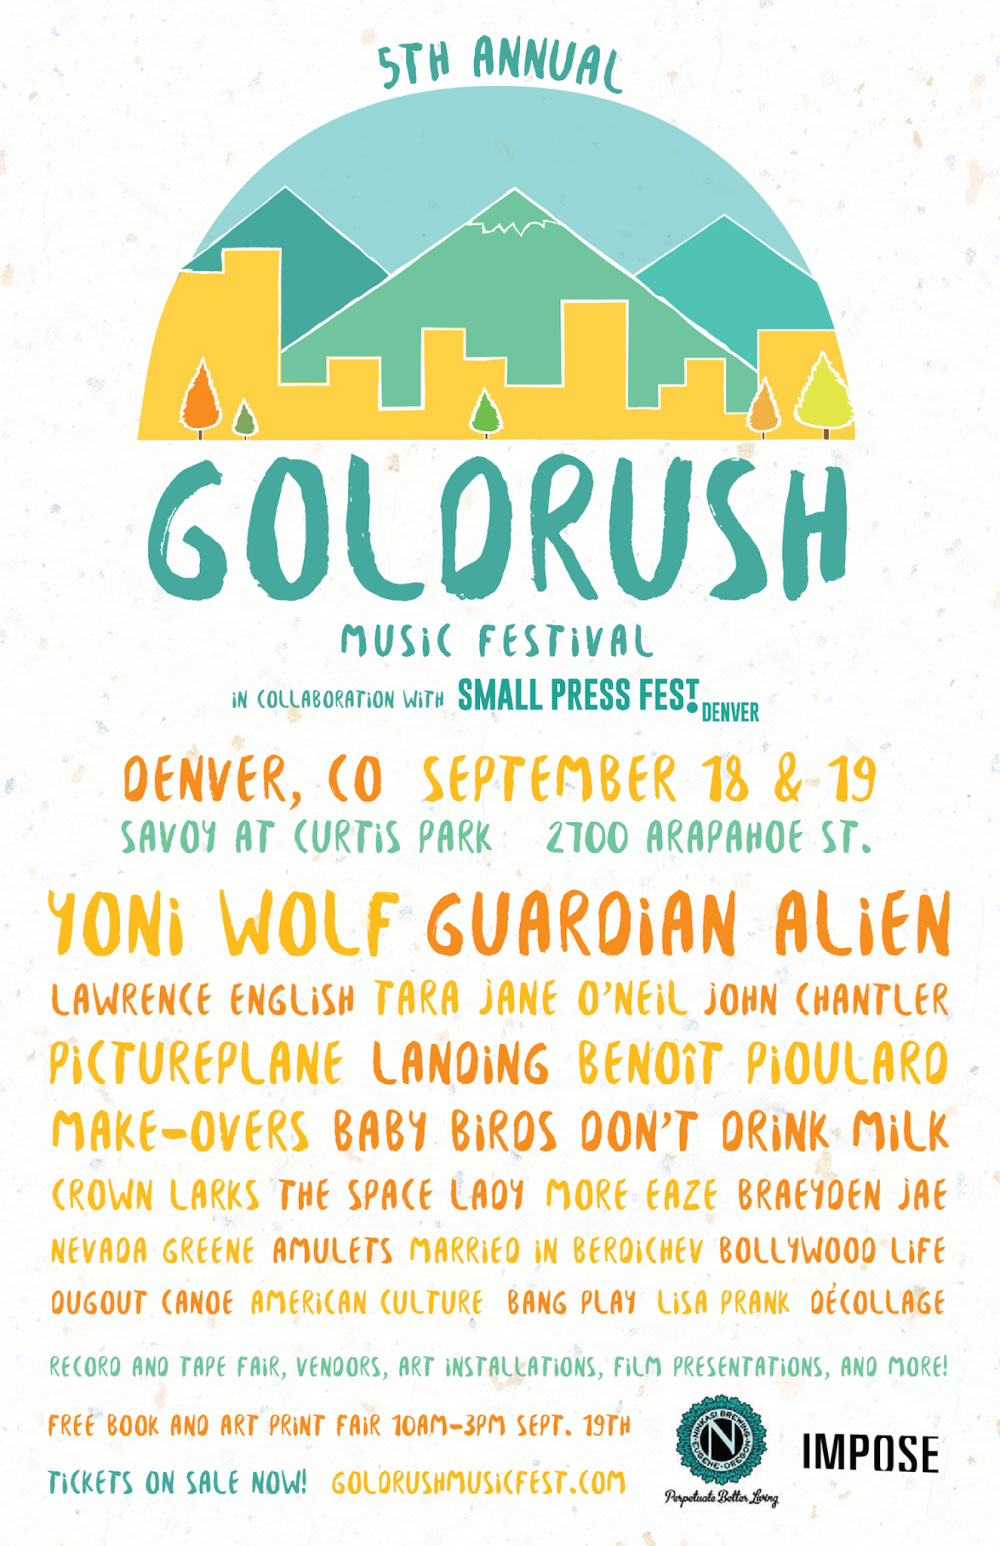 Goldrush festival flyer